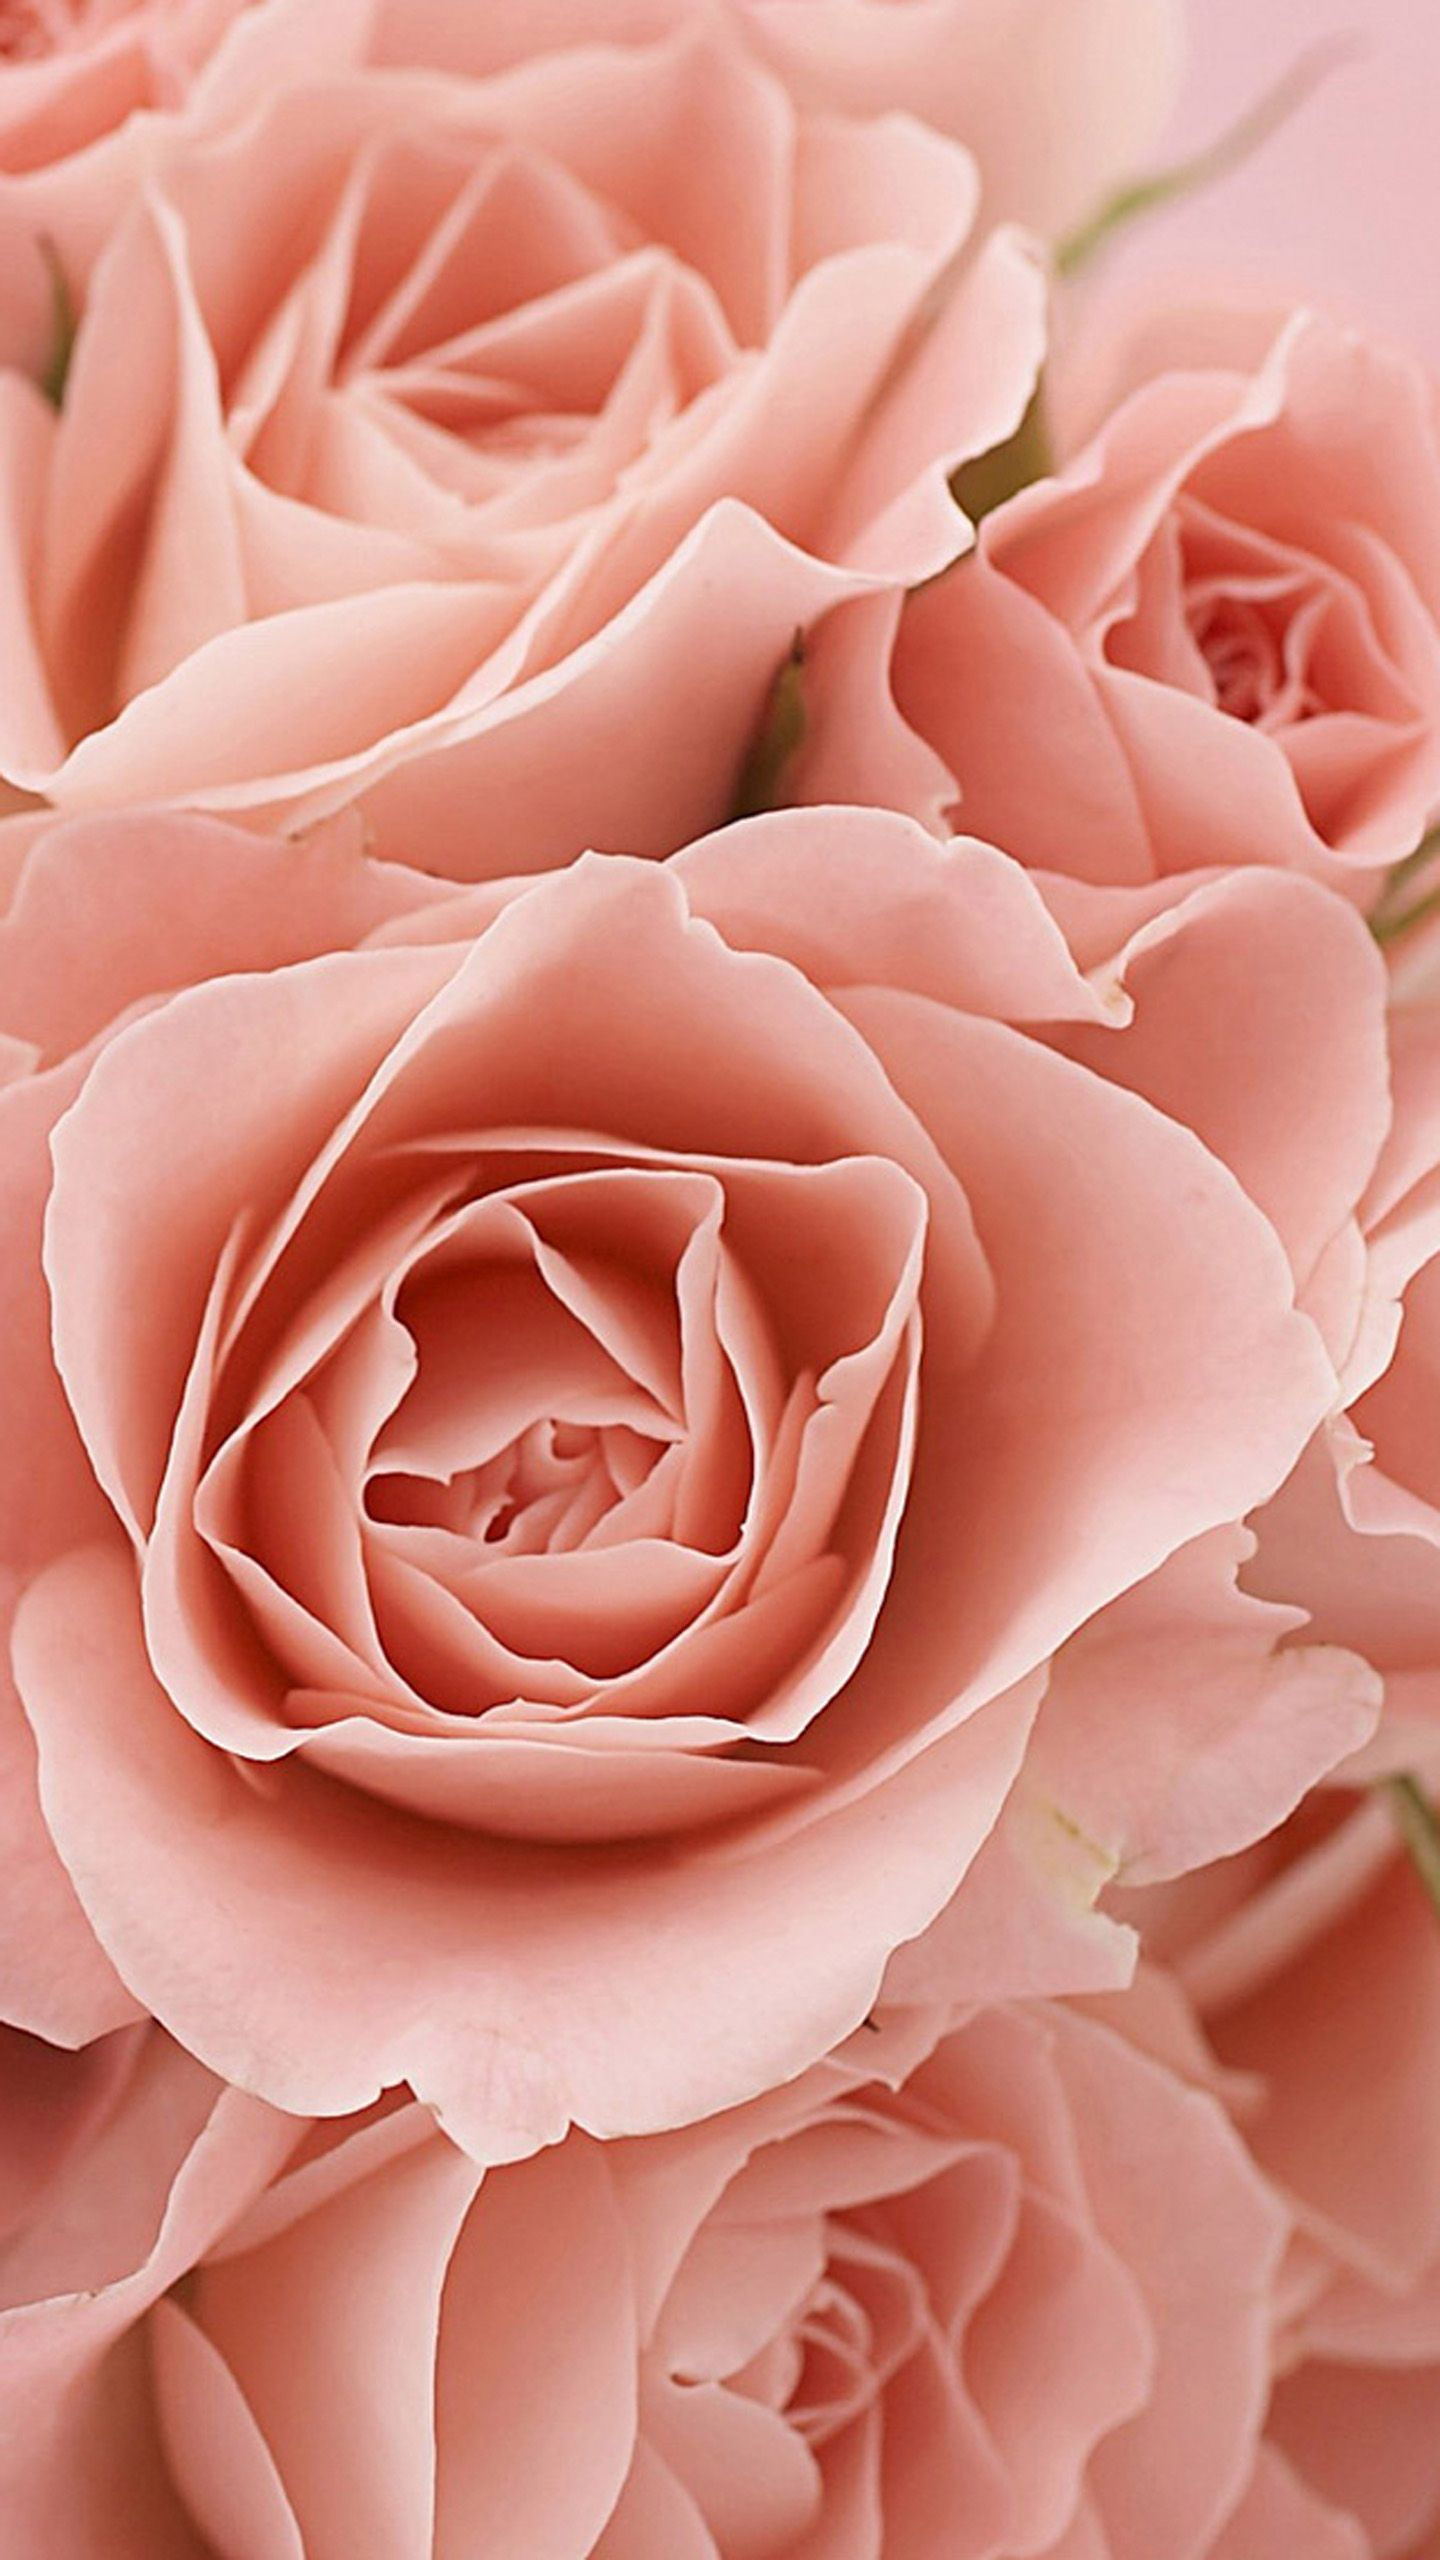 Wallpaper Samsung Galaxy S6 Pink Roses Awesome Jpg 1440 2560 Flower Phone Wallpaper S5 Wallpaper Flowers